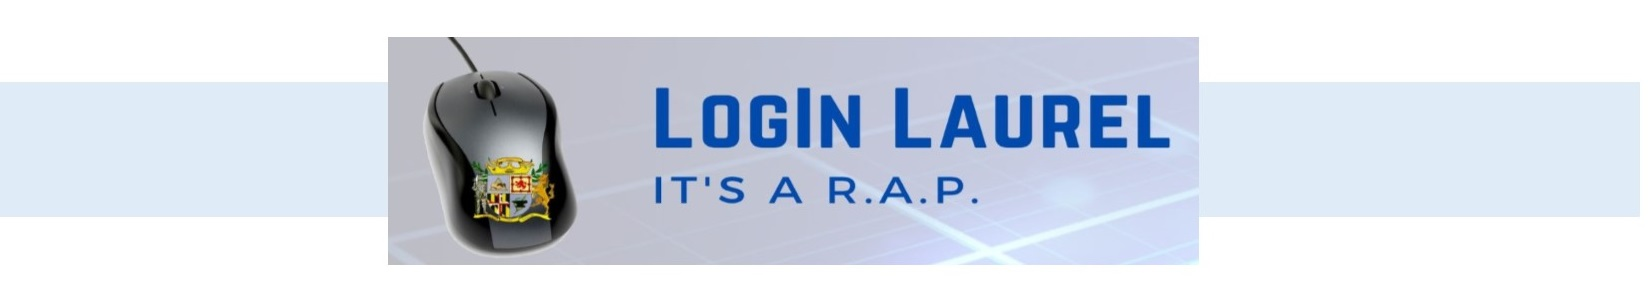 log_in_laurel_2.jpg